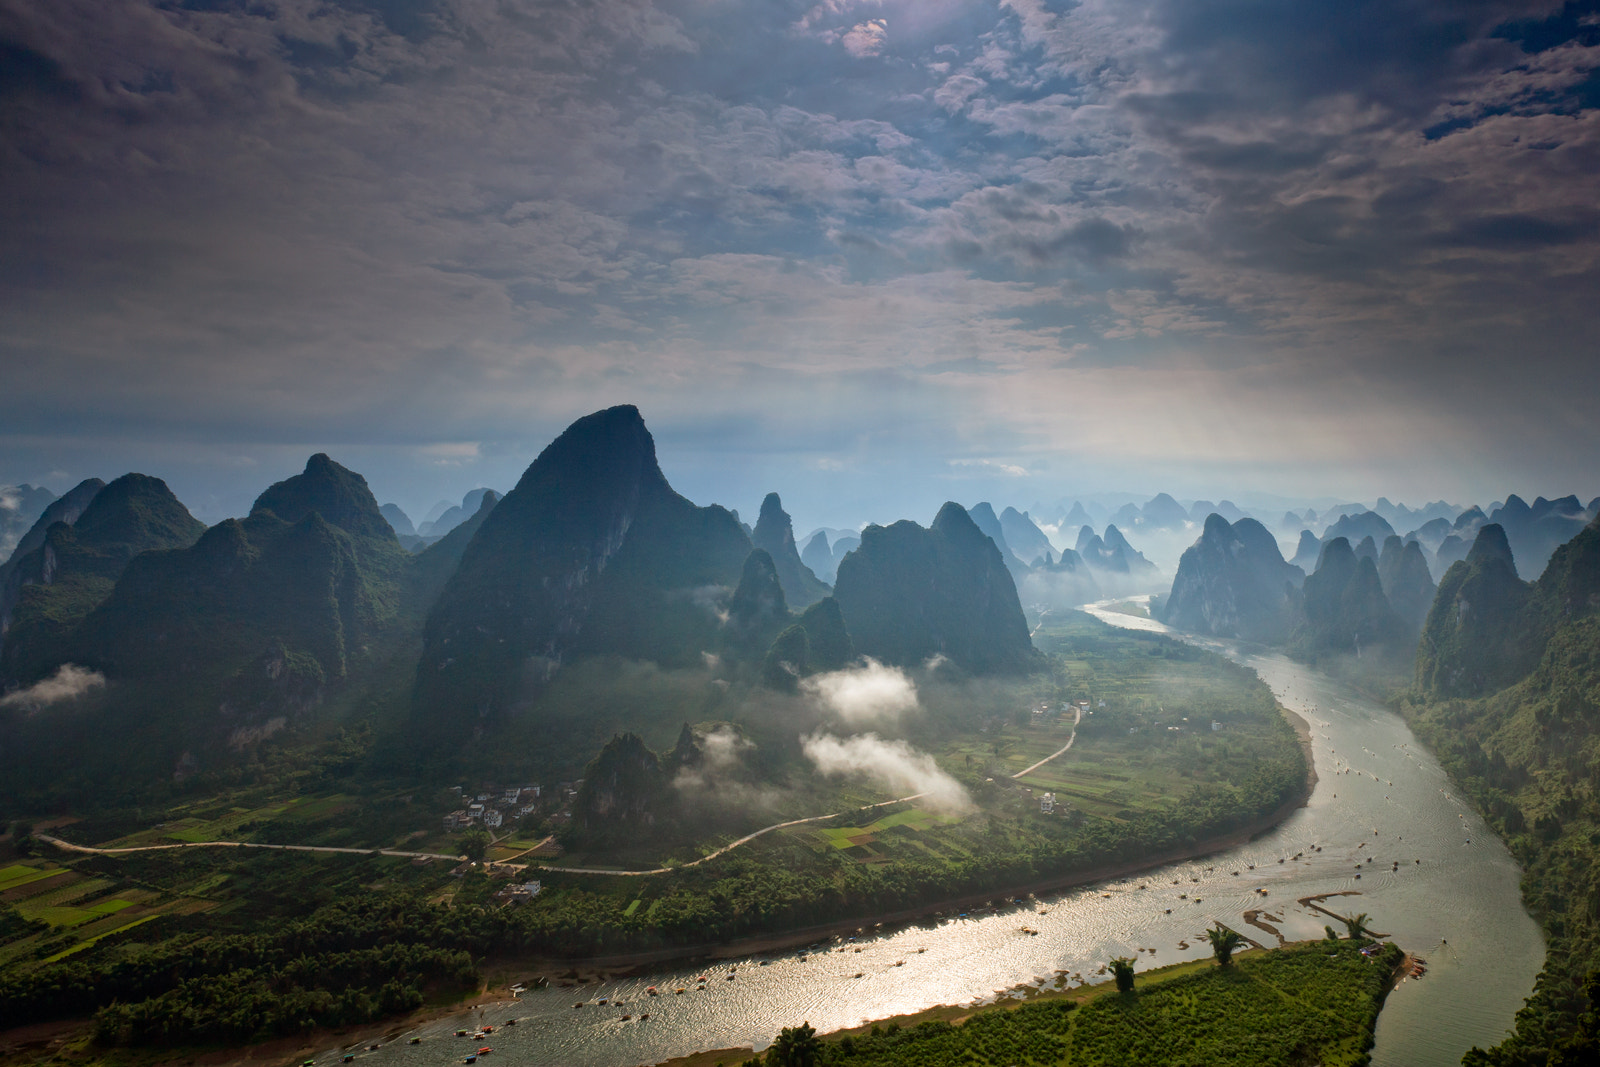 Photograph Guilin Scenery by Helminadia Ranford on 500px